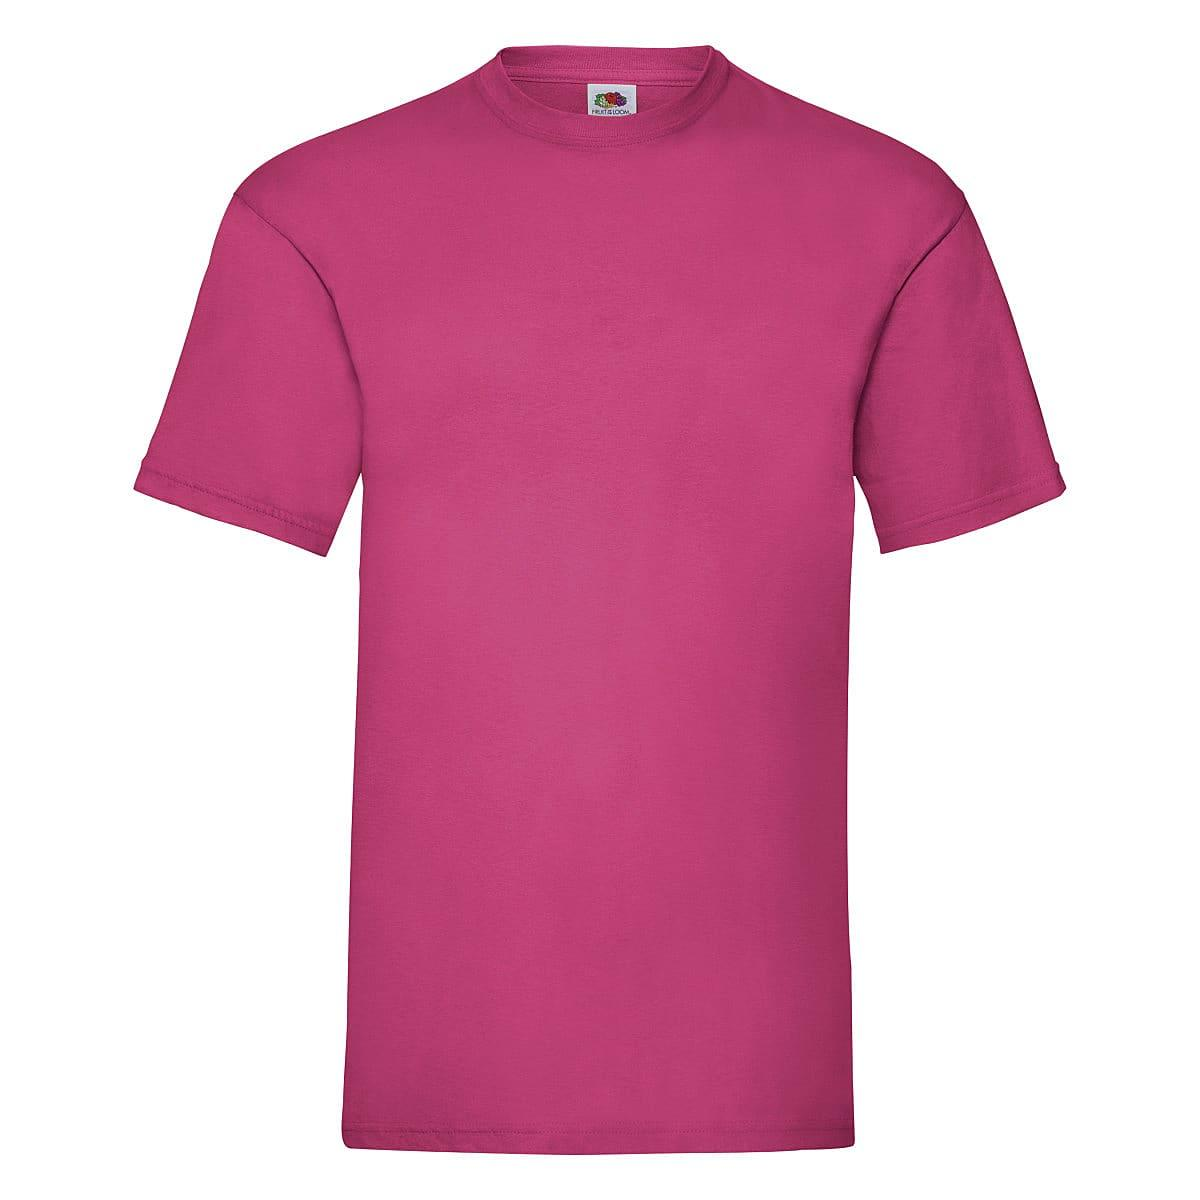 Fruit Of The Loom Valueweight T-Shirt in Fuchsia (Product Code: 61036)